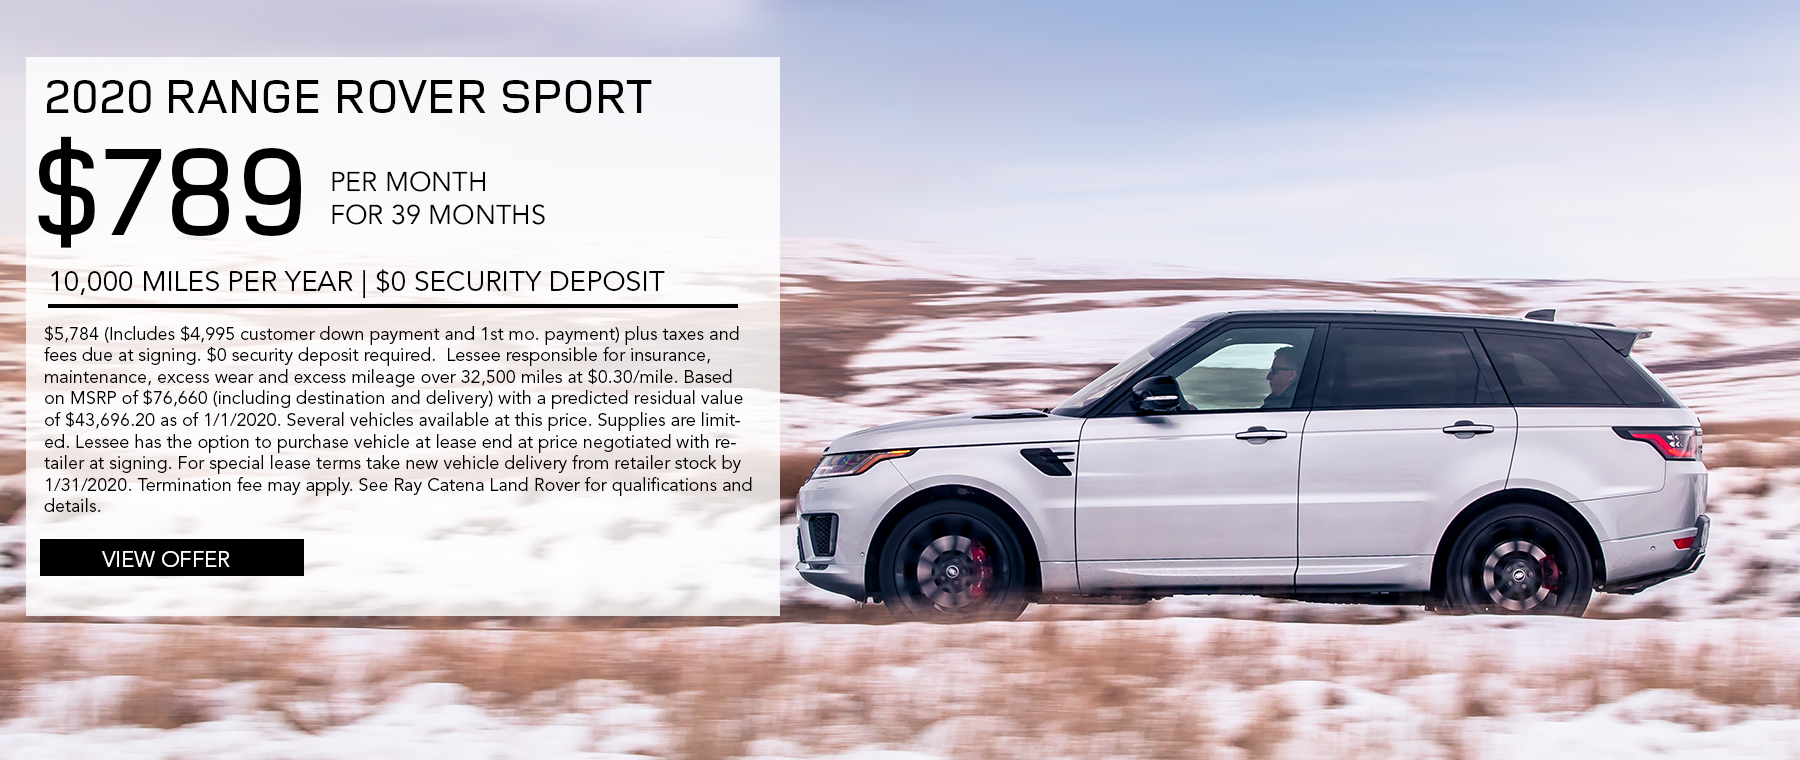 2020 Range Rover Sport · $789/mo. · 39 mos. · 10,000 miles per year  $5,784 (Includes $4,995 customer down payment and 1st mo. payment) plus taxes and fees due at signing. $0 security deposit required.  Lessee responsible for insurance, maintenance, excess wear and excess mileage over 32,500 miles at $0.30/mile. Based on MSRP of $76,660 (including destination and delivery) with a predicted residual value of $43,696.20 as of 1/1/2020. Several vehicles available at this price. Supplies are limited. Lessee has the option to purchase vehicle at lease end at price negotiated with retailer at signing. For special lease terms take new vehicle delivery from retailer stock by 1/31/2020. Termination fee may apply. See Ray Catena Land Rover for qualifications and details.  Click to view offer. White Range Rover Sport on road with snowy field around it.